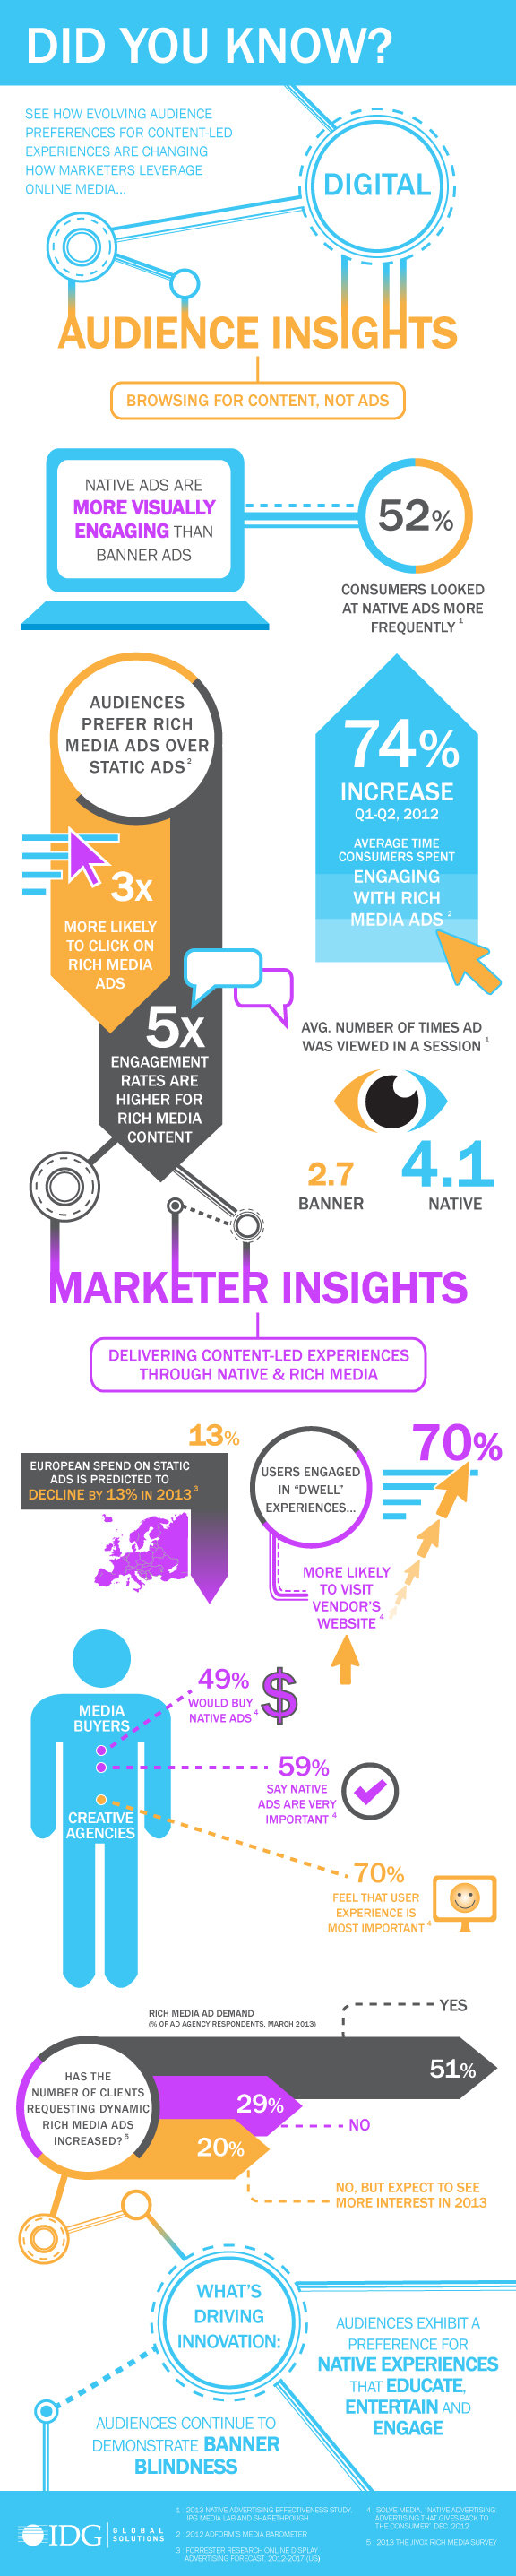 did you know digitale audience insights #infographic